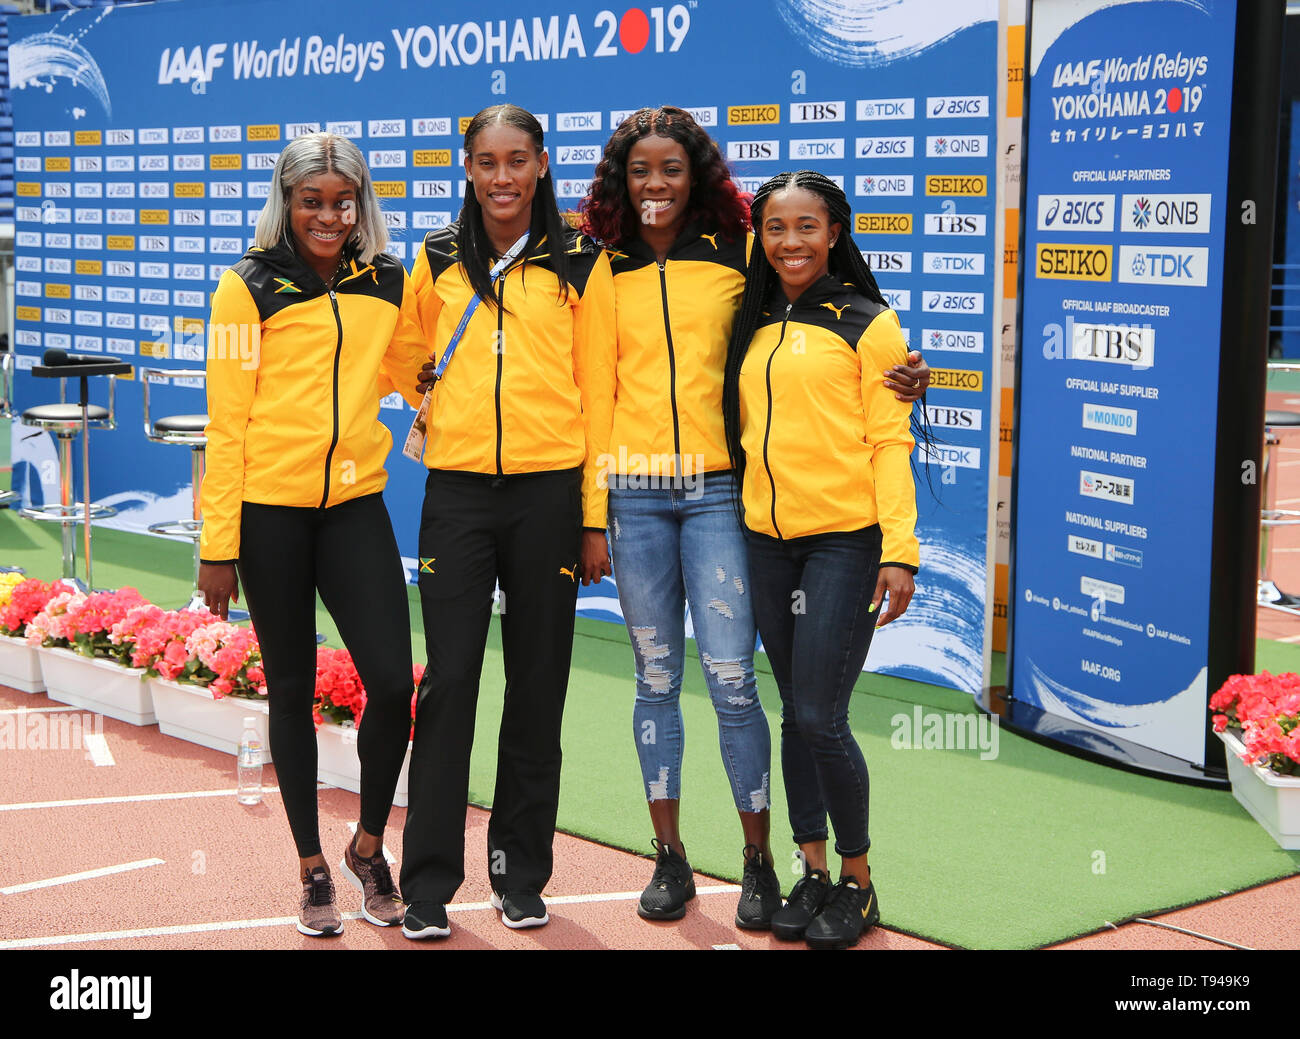 YOKOHAMA, JAPAN - MAY 10: Jamaica's women's 4x200m team (Shelly-Ann Fraser-Pryce, Shericka Jackson, Stephenie Ann McPherson, Elaine Thompson)  during the official press conference of the 2019 IAAF World Relay Championships at the Nissan Stadium on May 10, 2019 in Yokohama, Japan. (Photo by Roger Sedres for the IAAF) - Stock Image